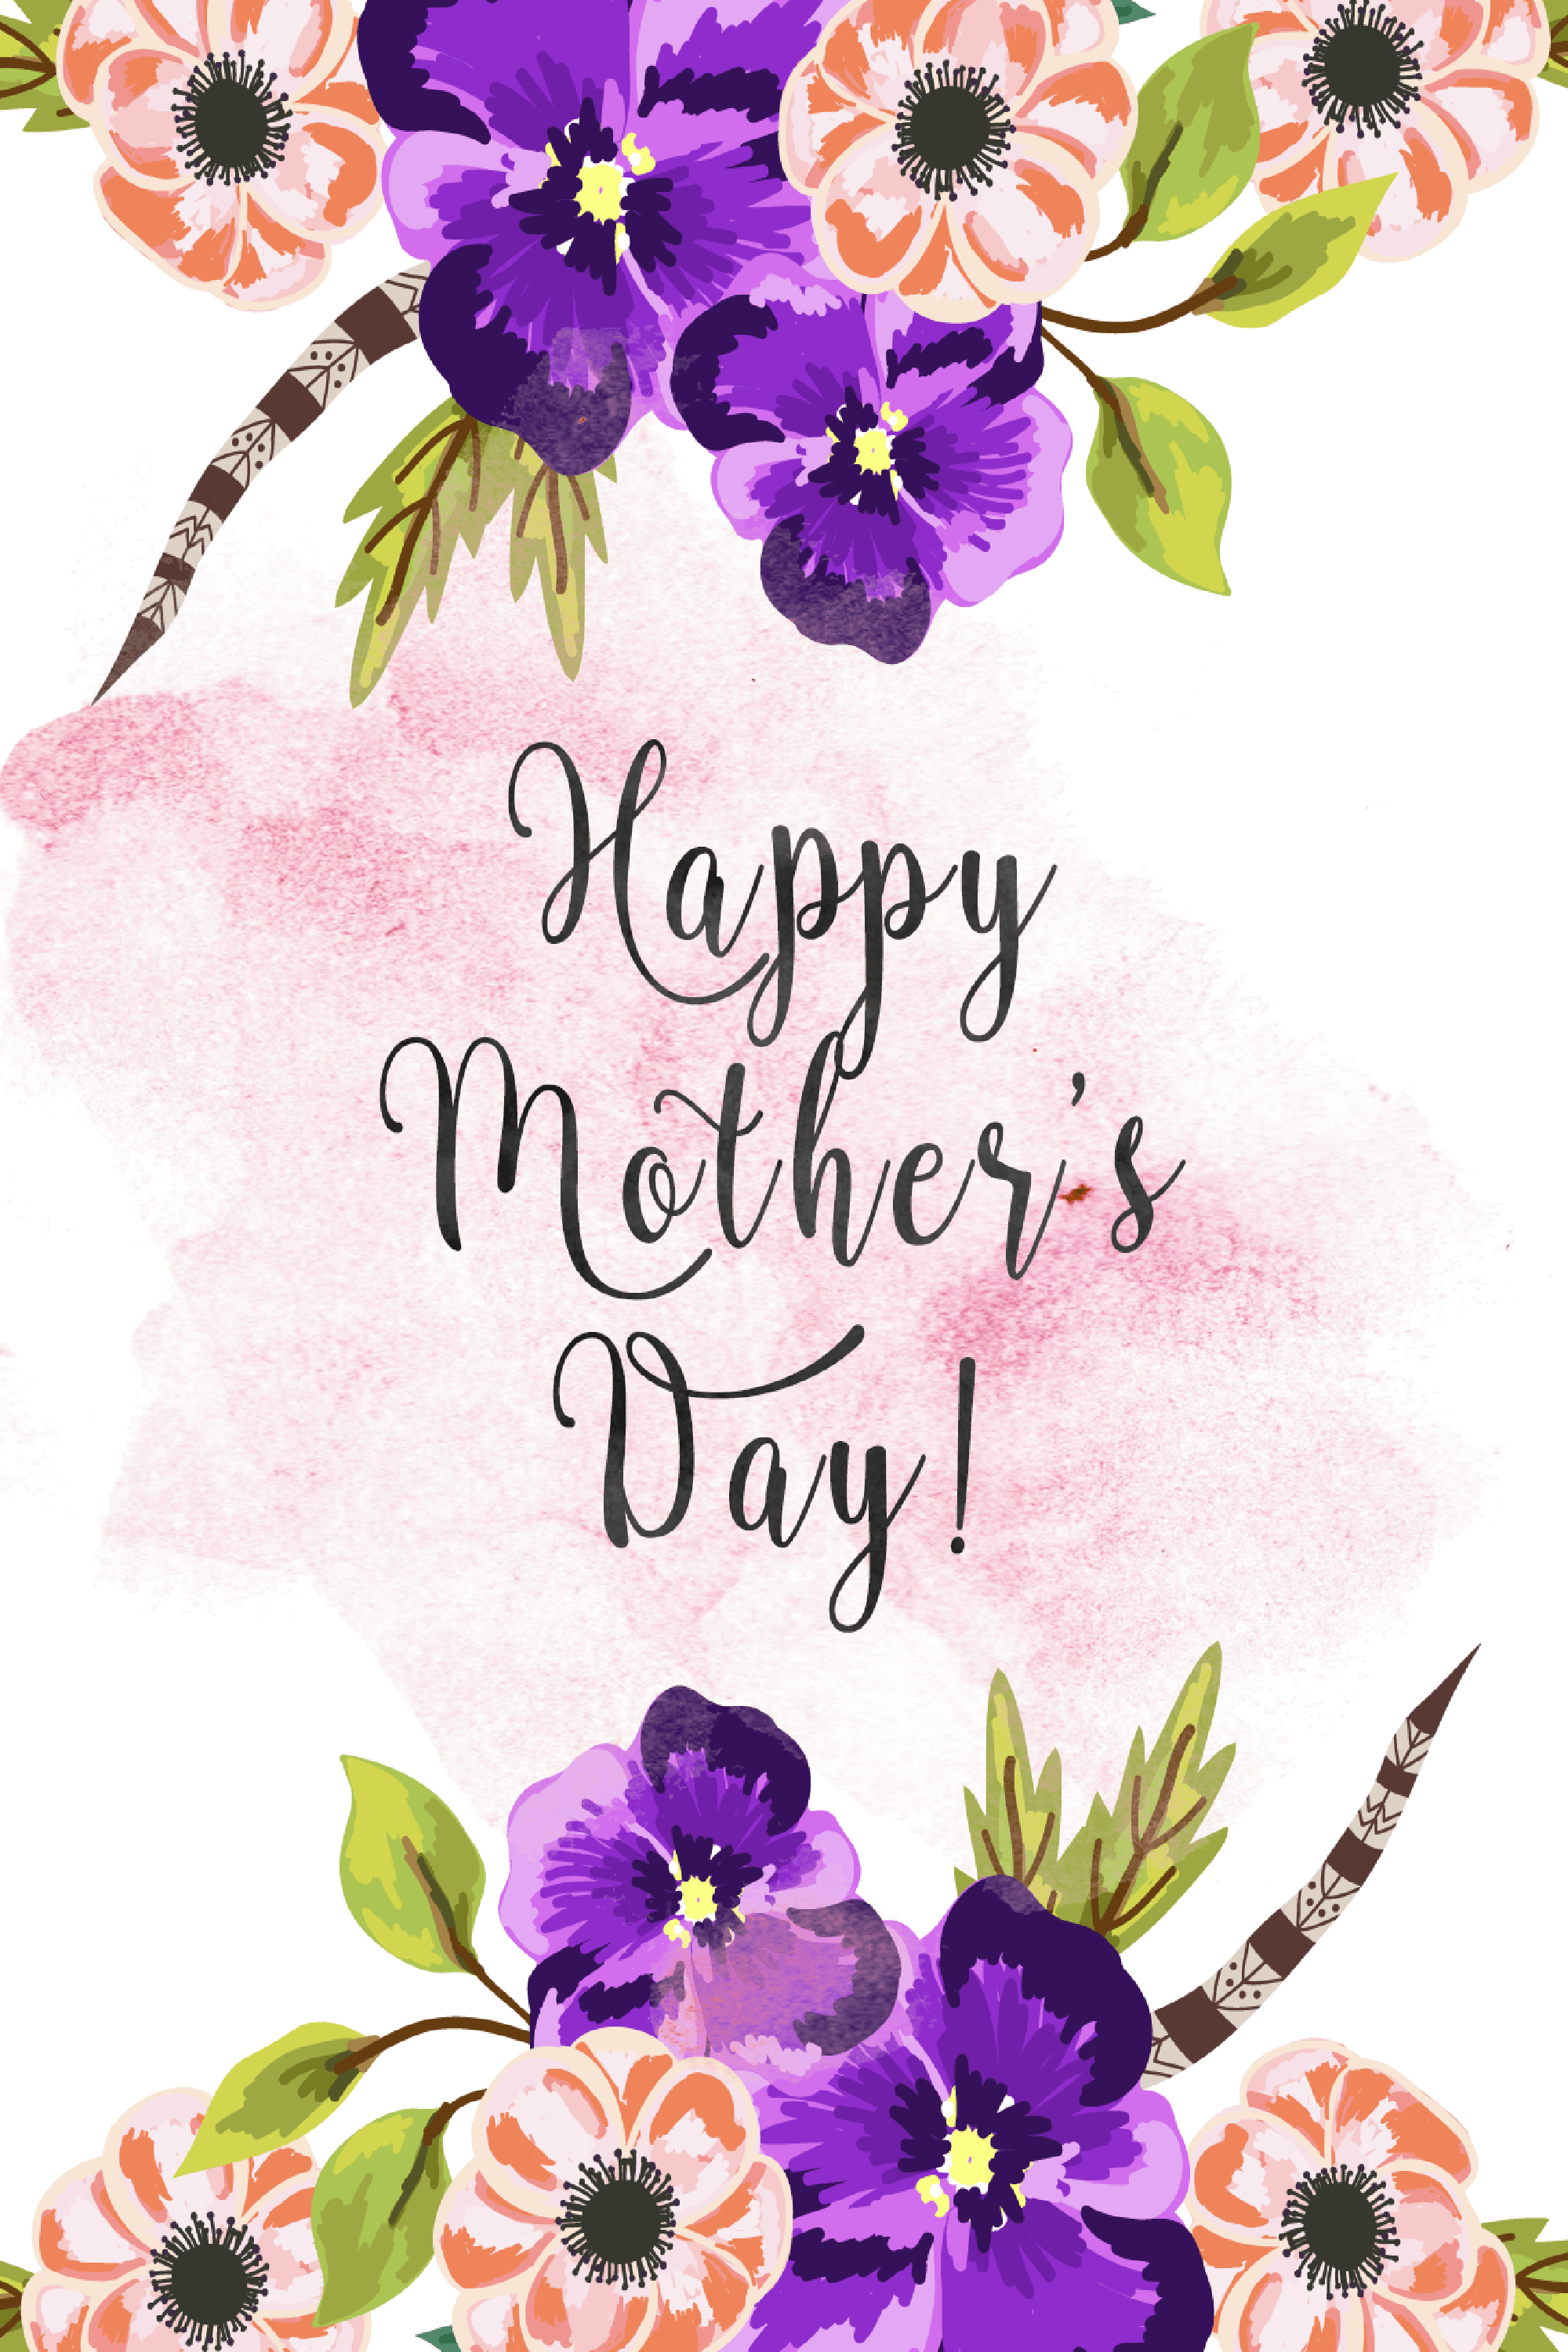 20 Cute Free Printable Mothers Day Cards - Mom Cards You Can Print - Free Printable Mothers Day Cards From The Dog